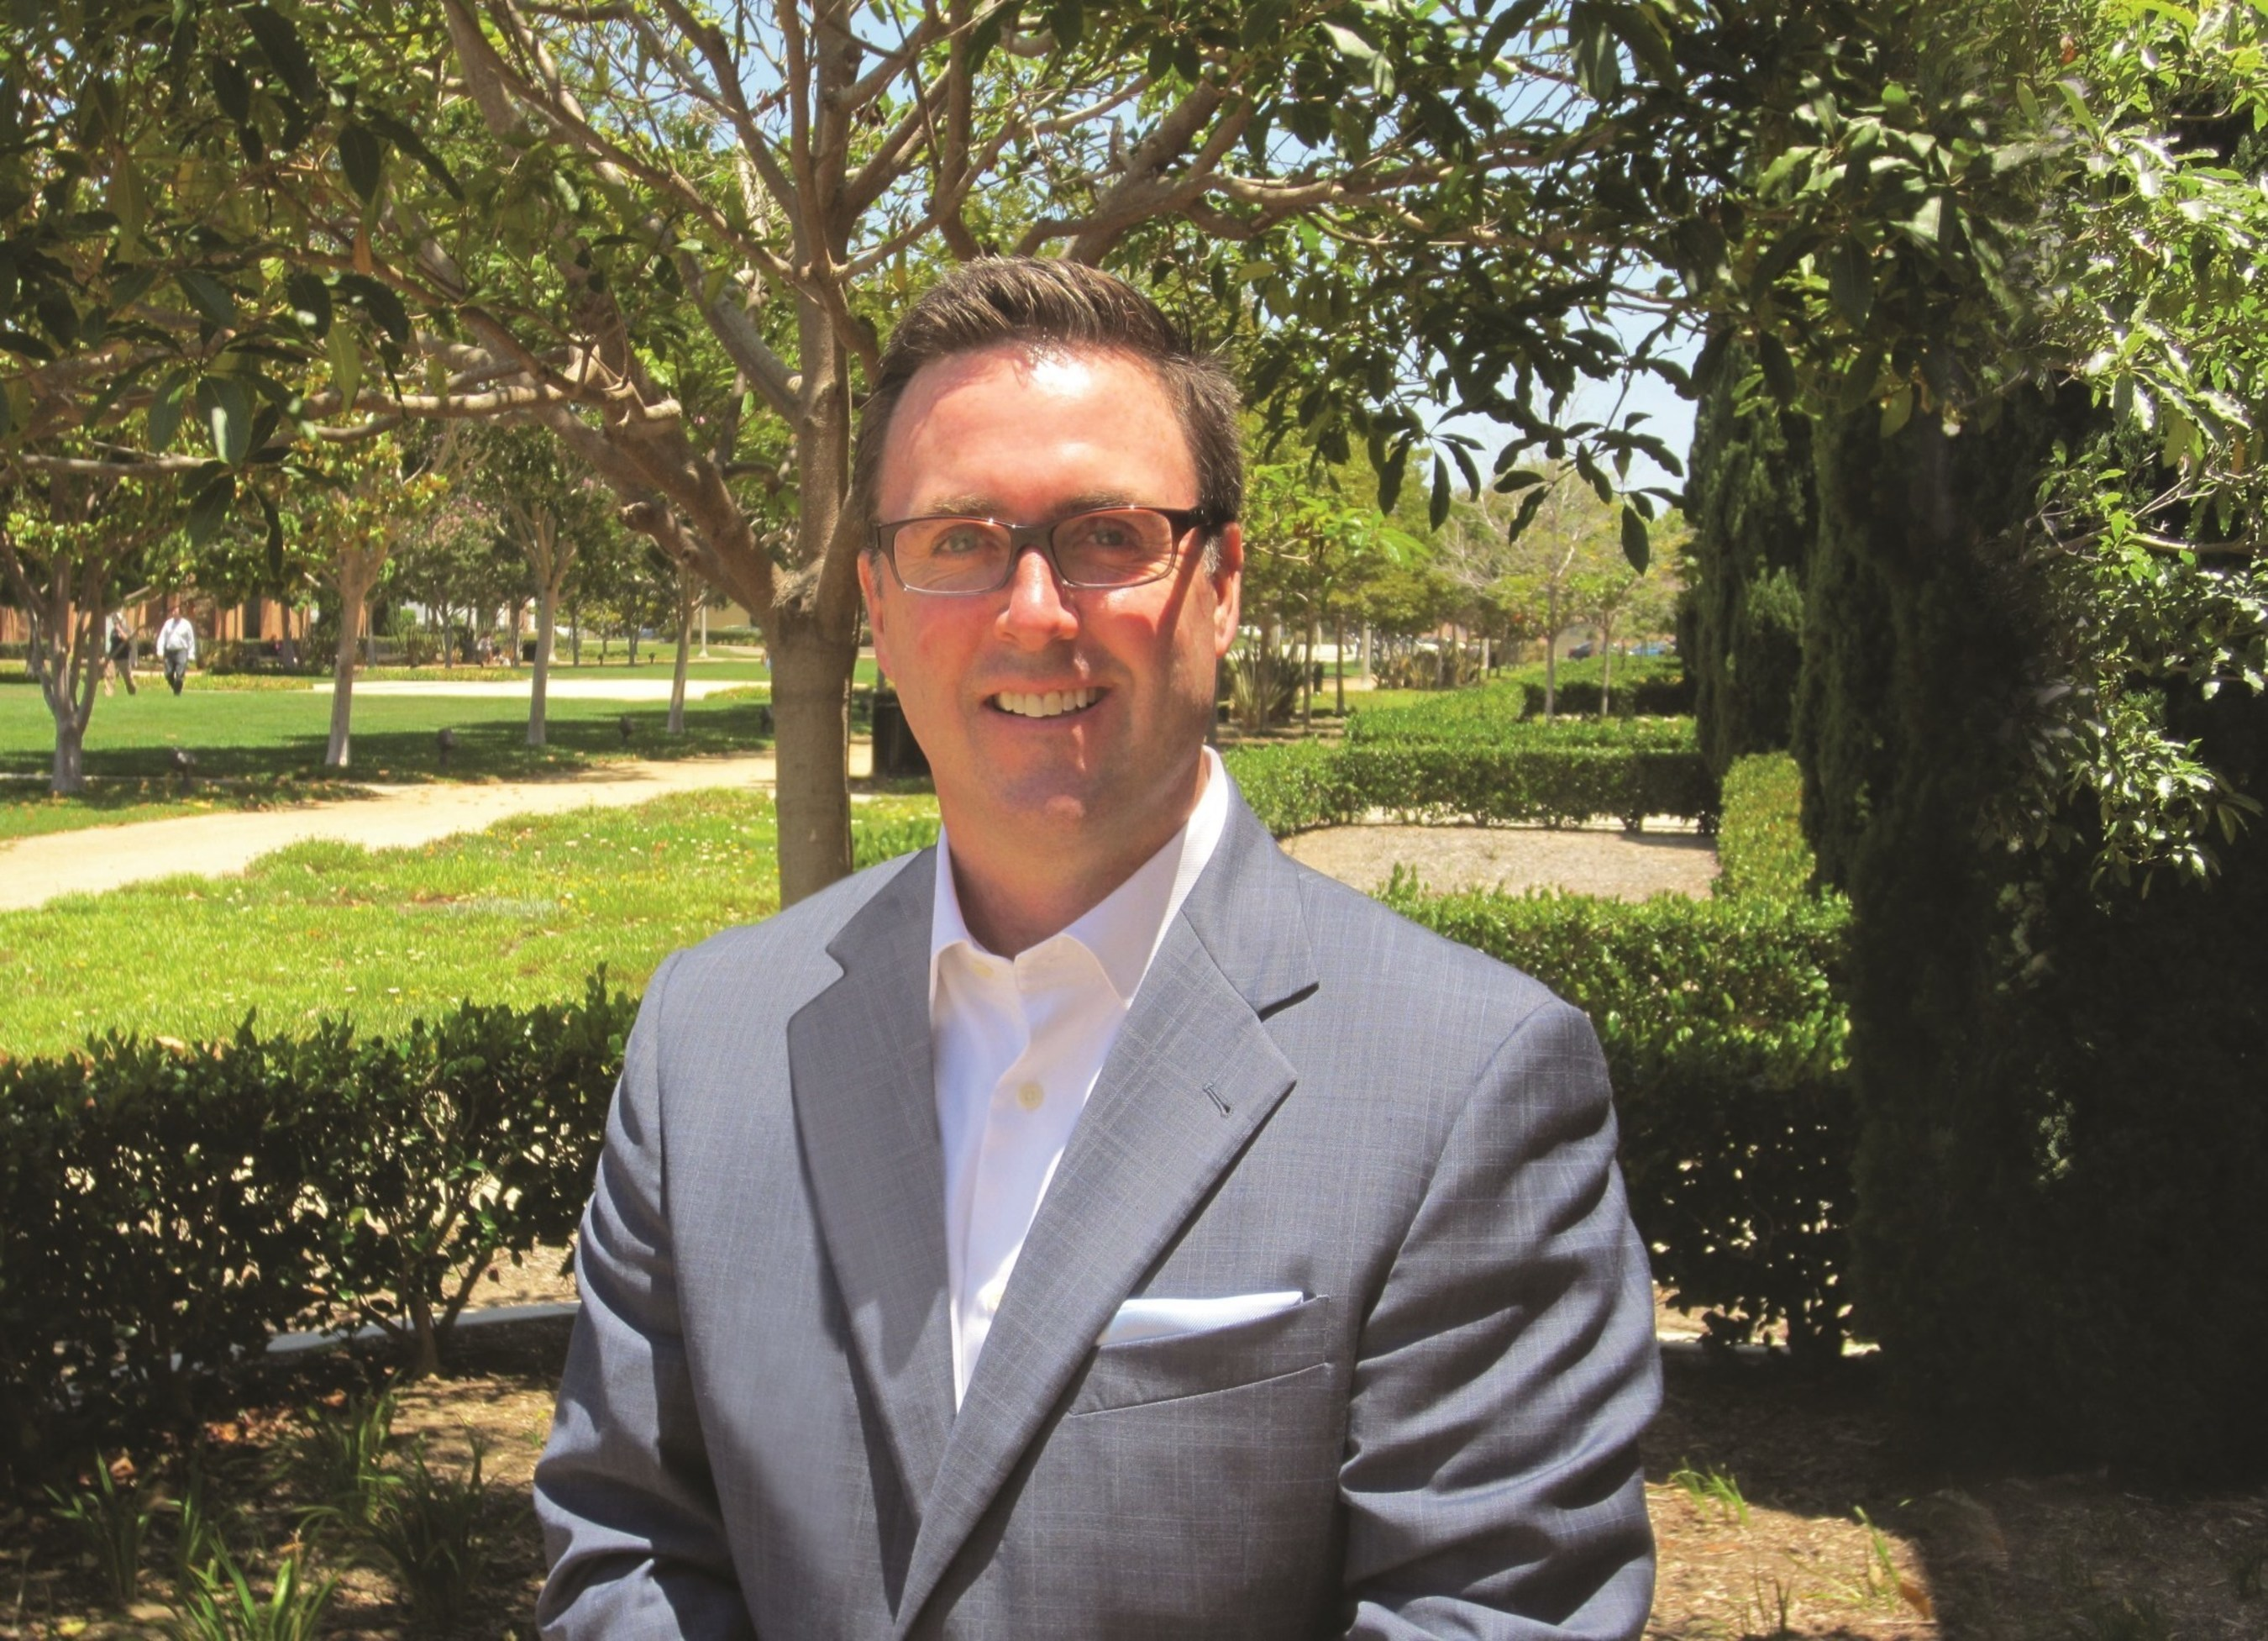 Chris Crocker Joins Pacific Sotheby's International Realty As Chief Operating Officer